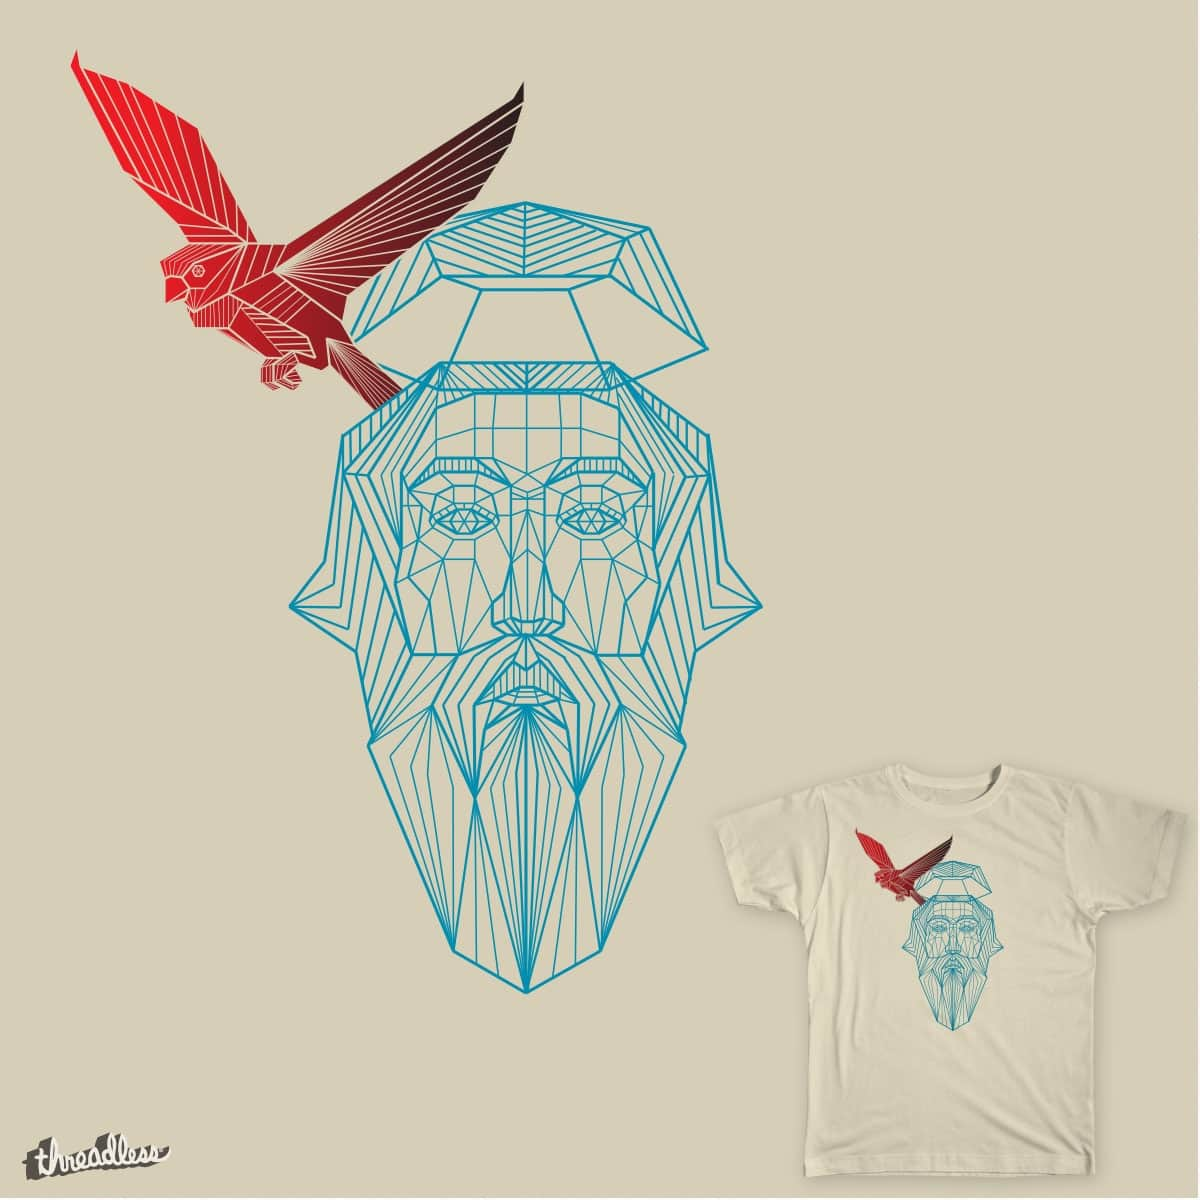 Free Your Mind by samhanauer on Threadless